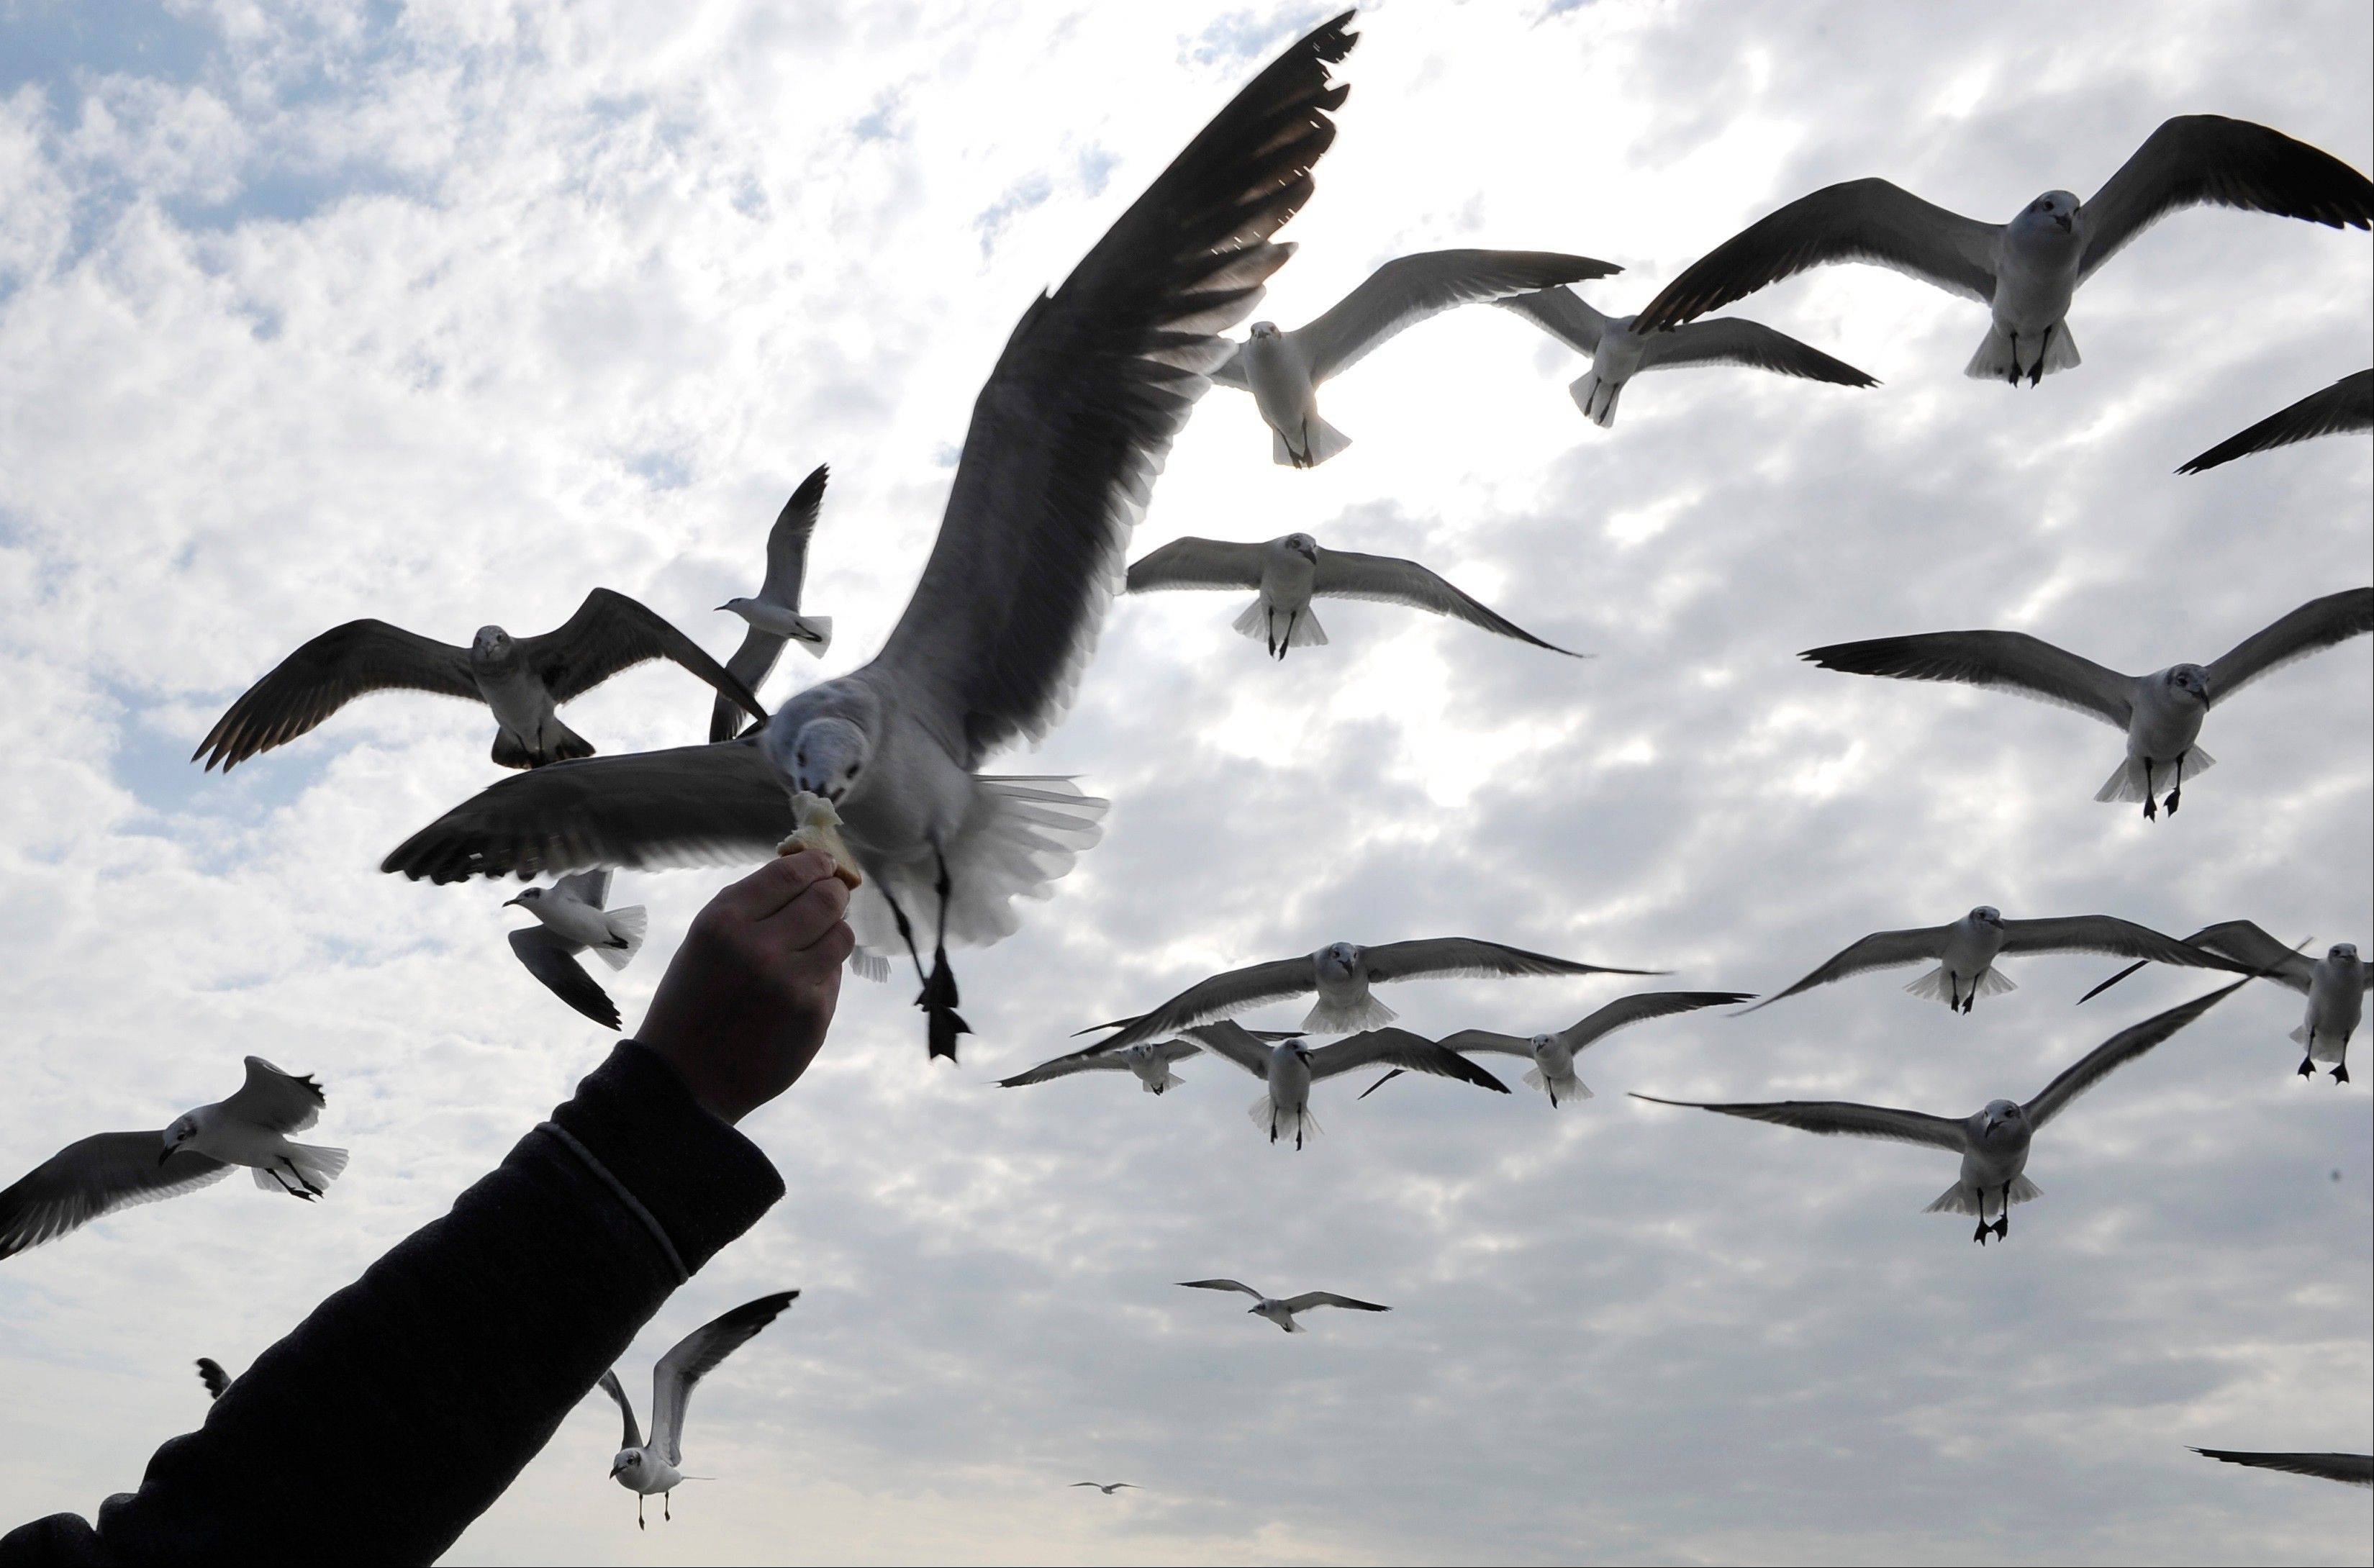 A sea gull snags a piece of bread out of a passenger's hand aboard a ferryboat as it crosses Galveston Bay in Galveston, Texas.